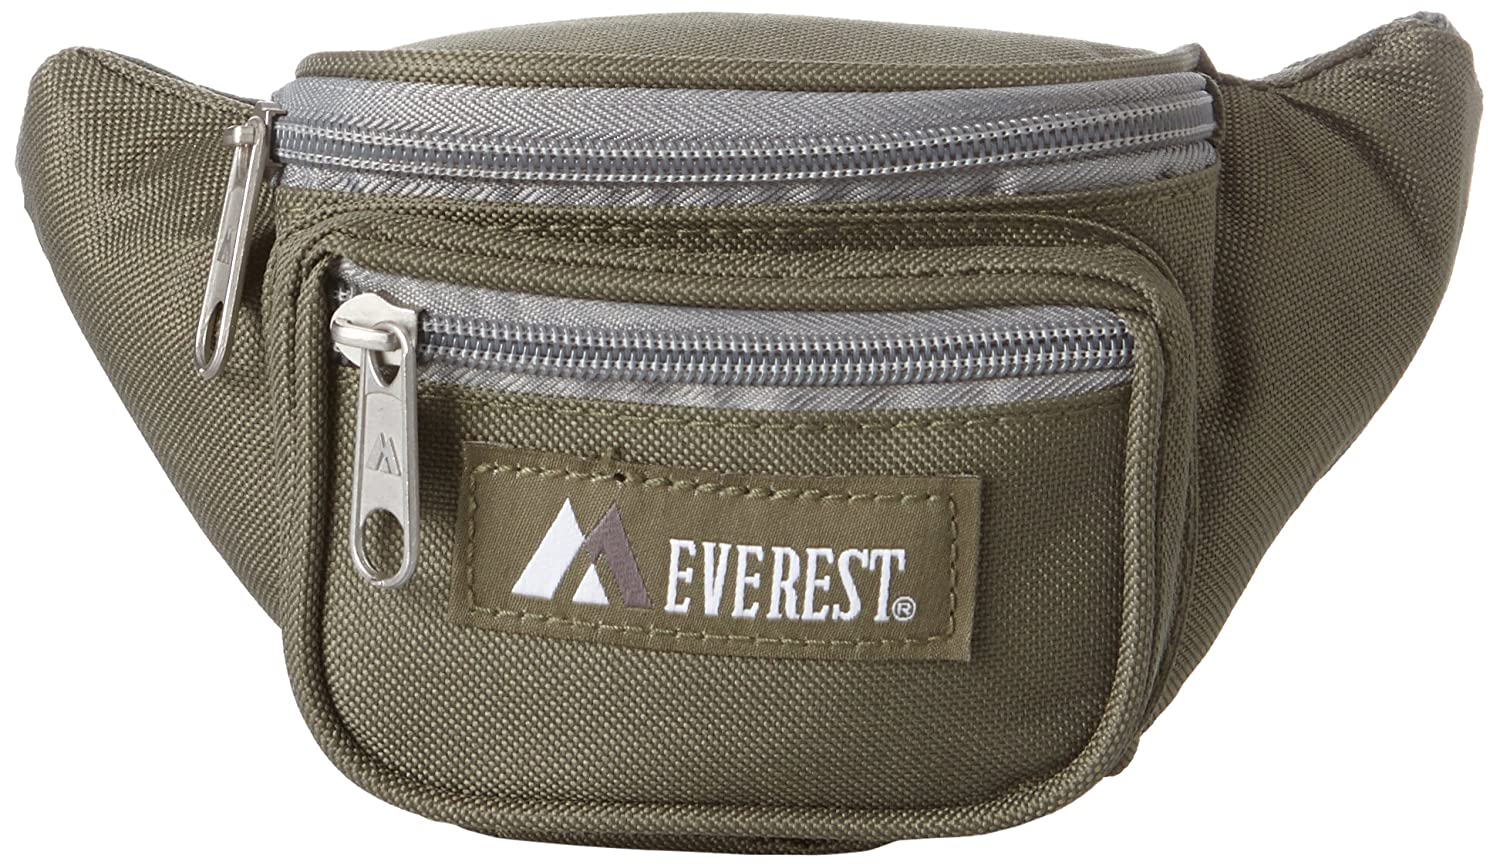 Everest Signature Waist Pack - Junior, Dark Purple, One Size EVFDS 044KS-DPL